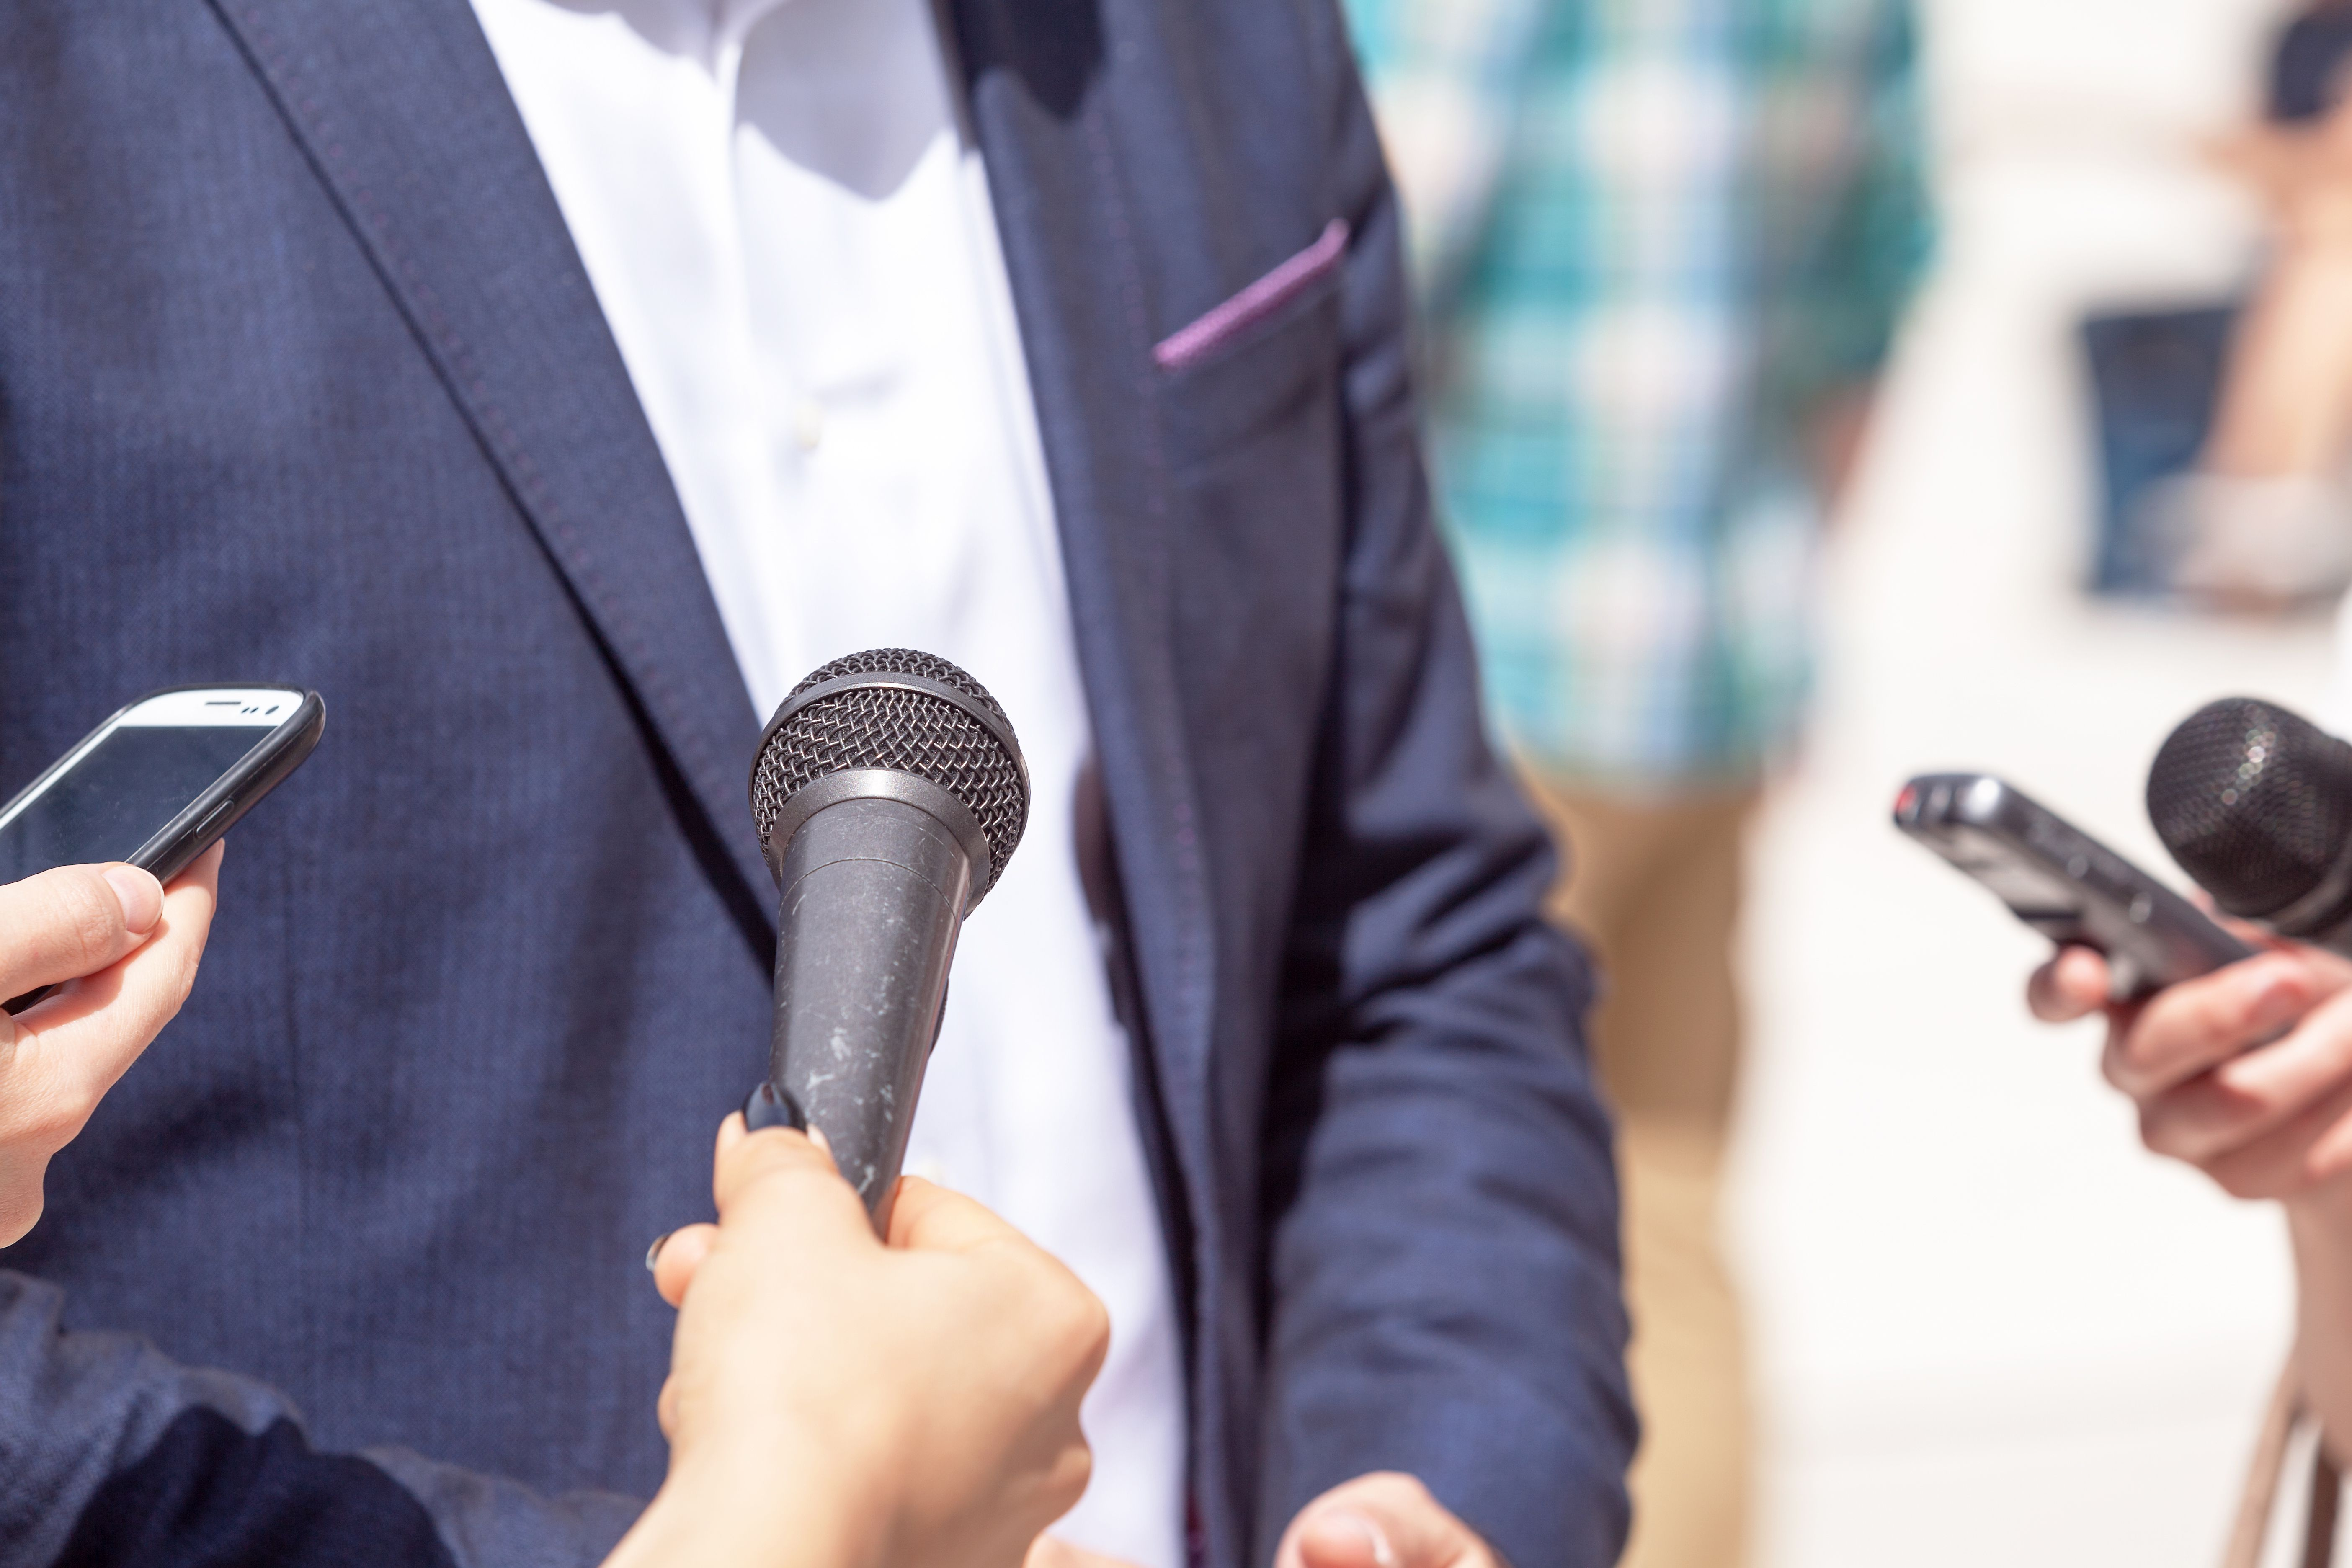 Cropped Image Of Journalist Holding Microphones And Mobile Phone